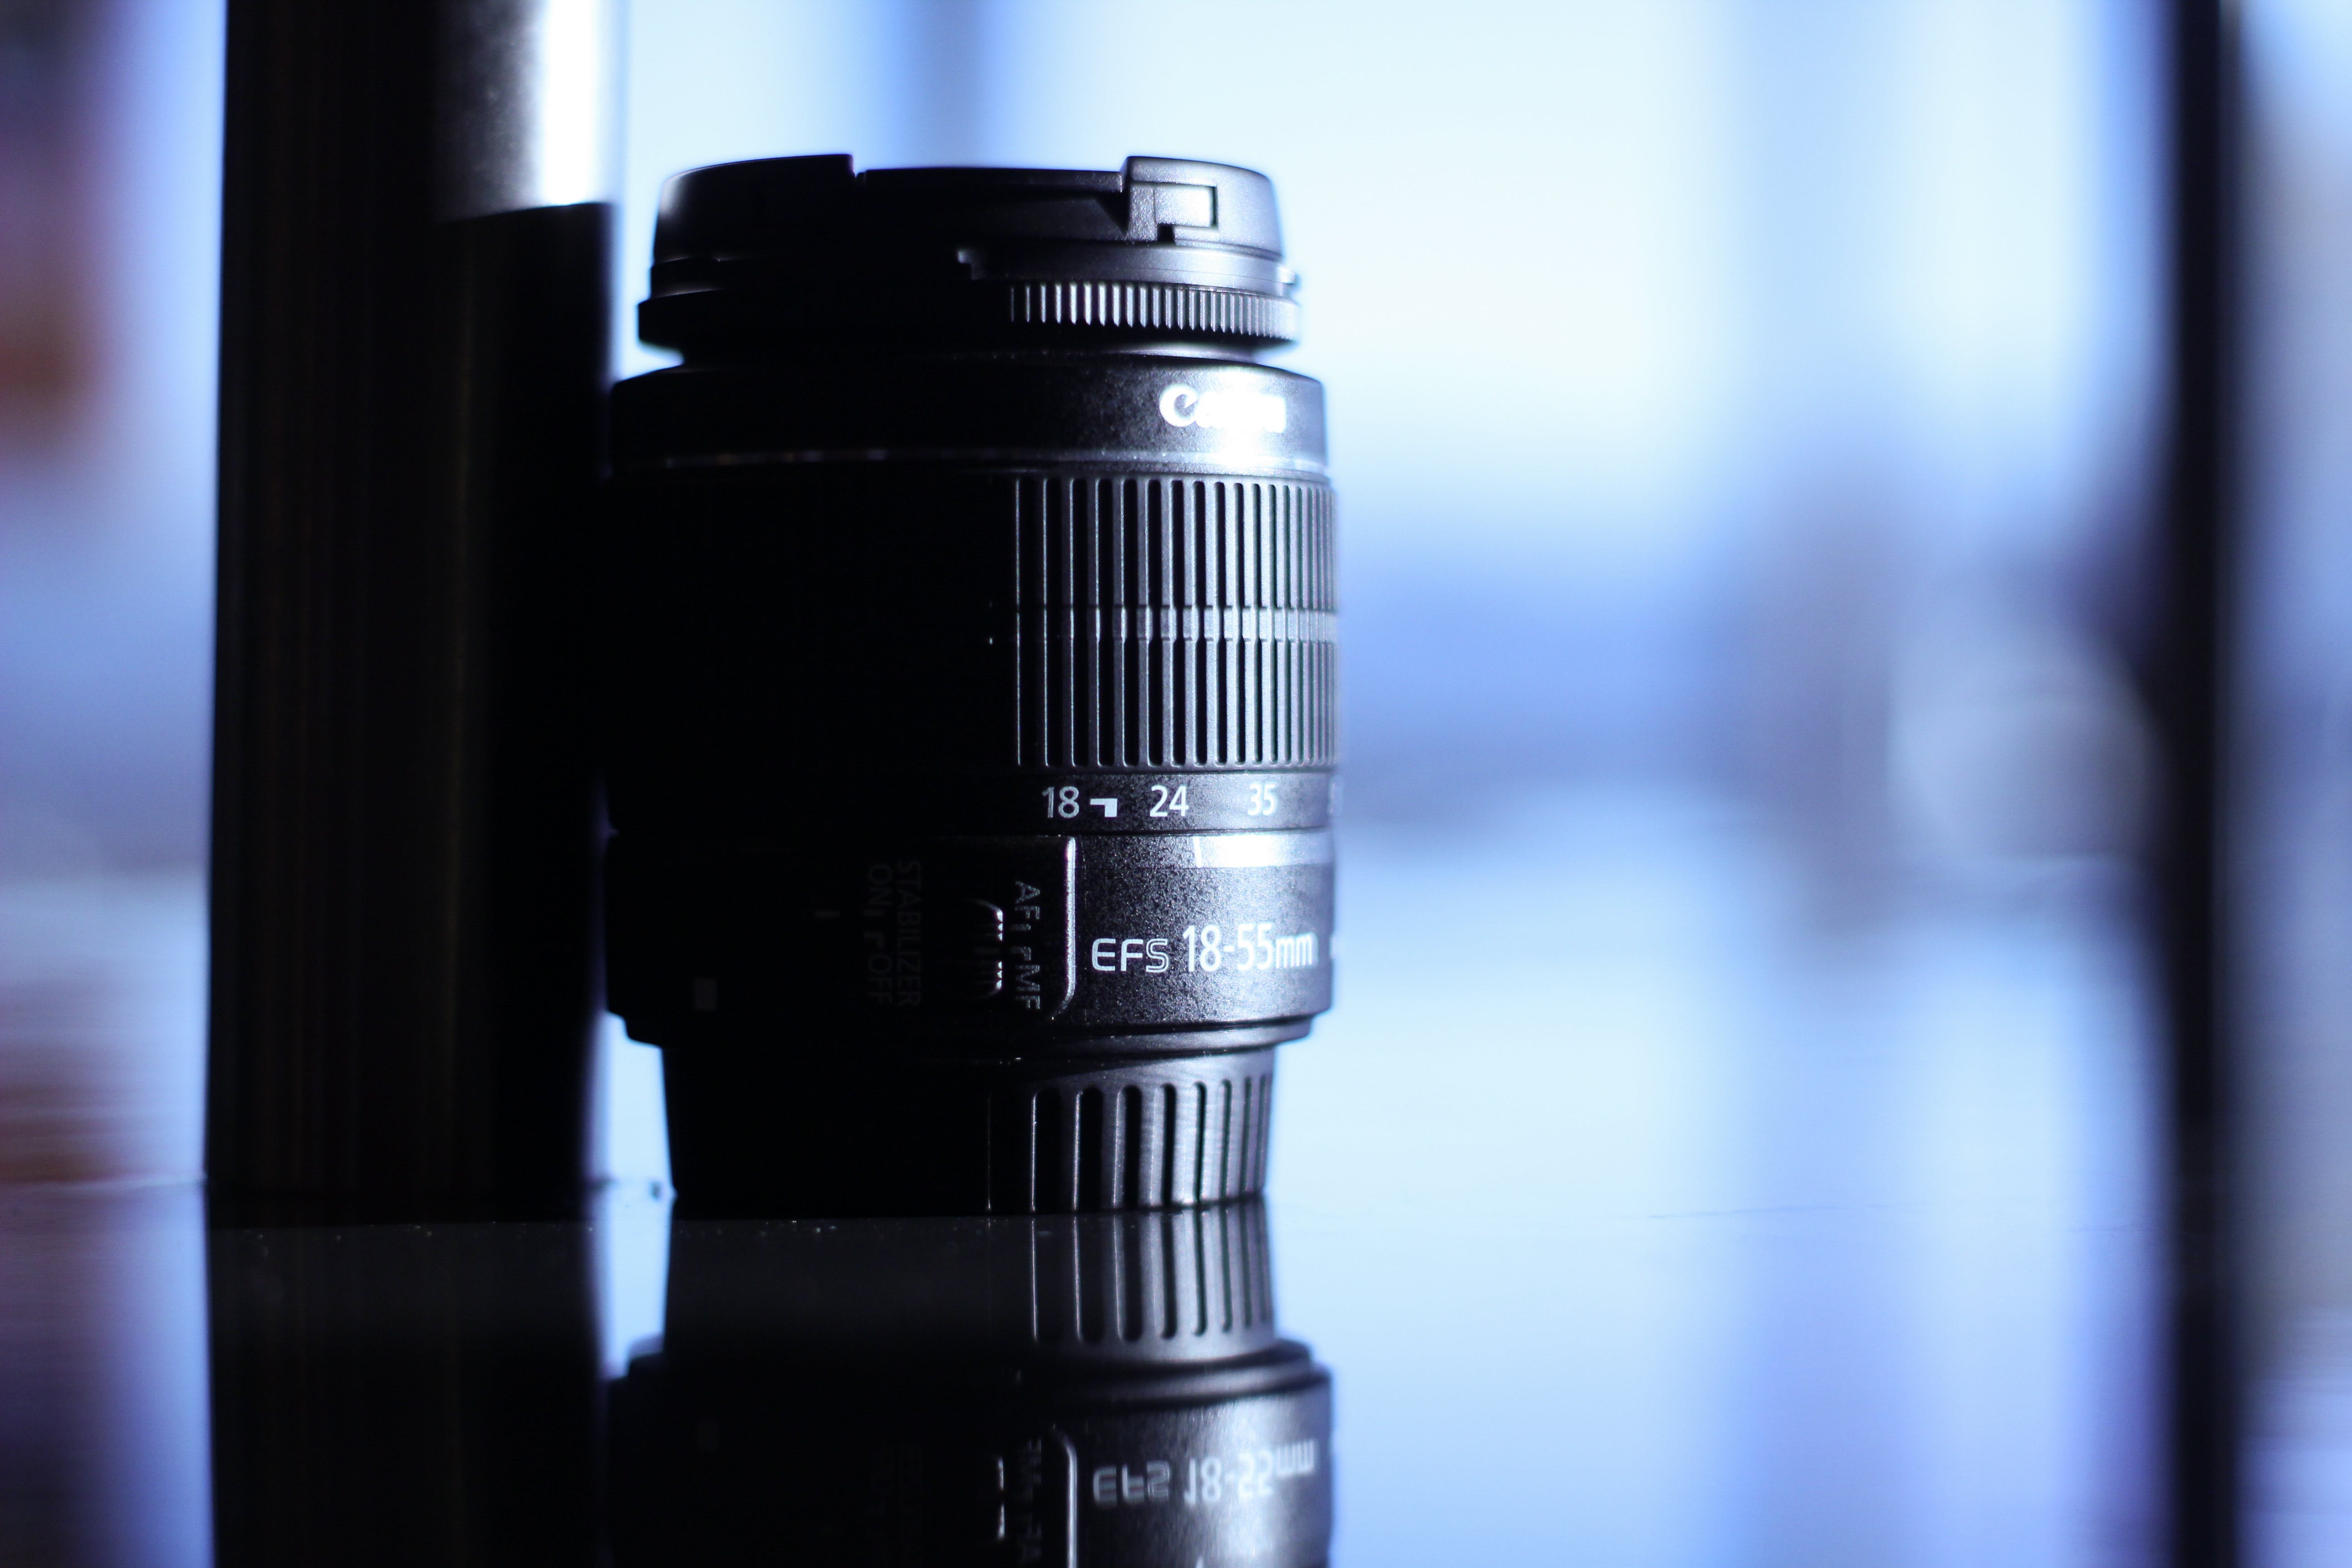 Tilt Lens Photography of Black Camera Lens